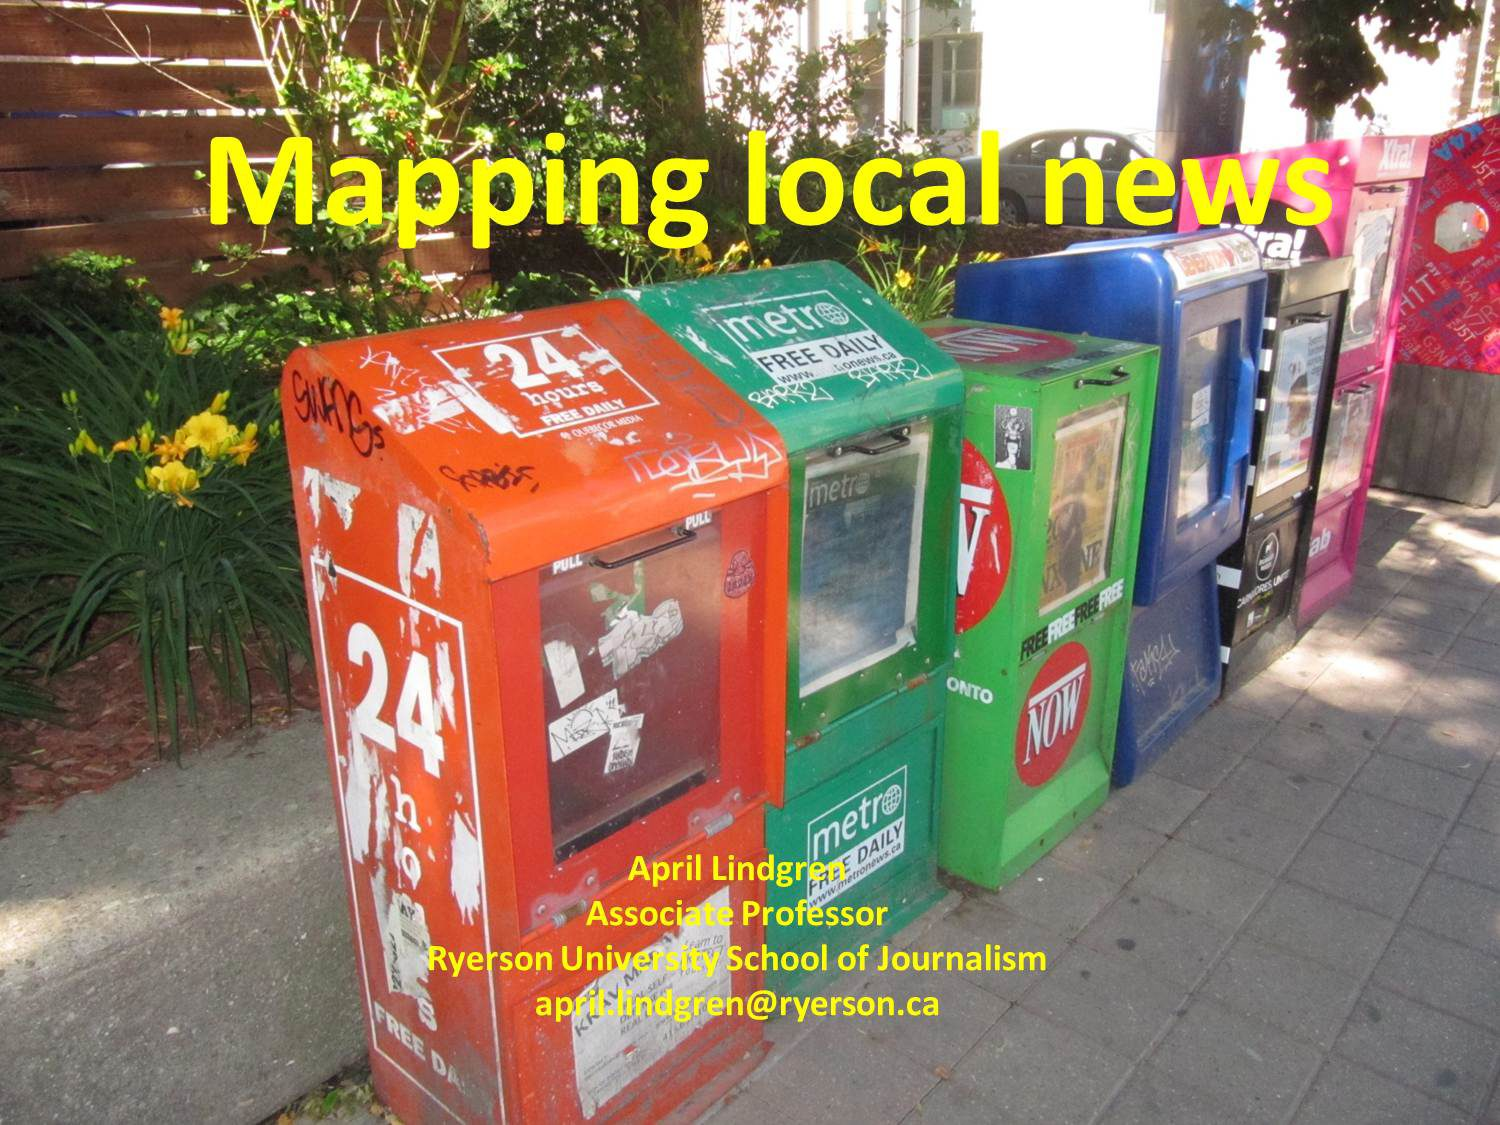 Image of news stands and headline that reads mapping local news